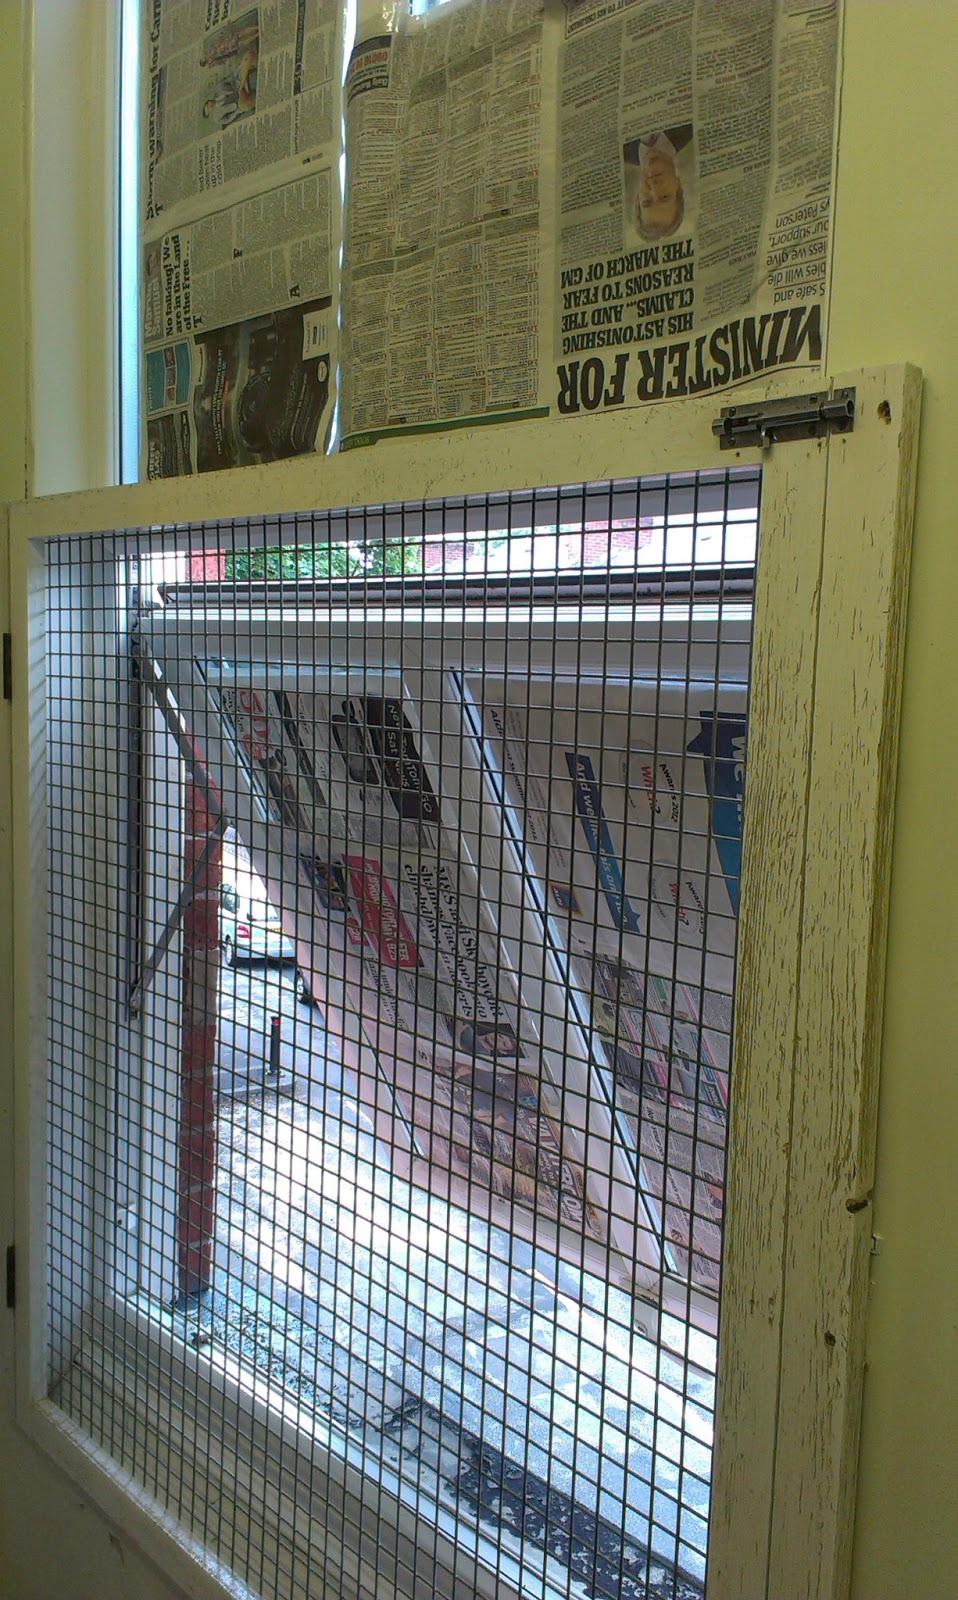 Open window with newspaper taped on